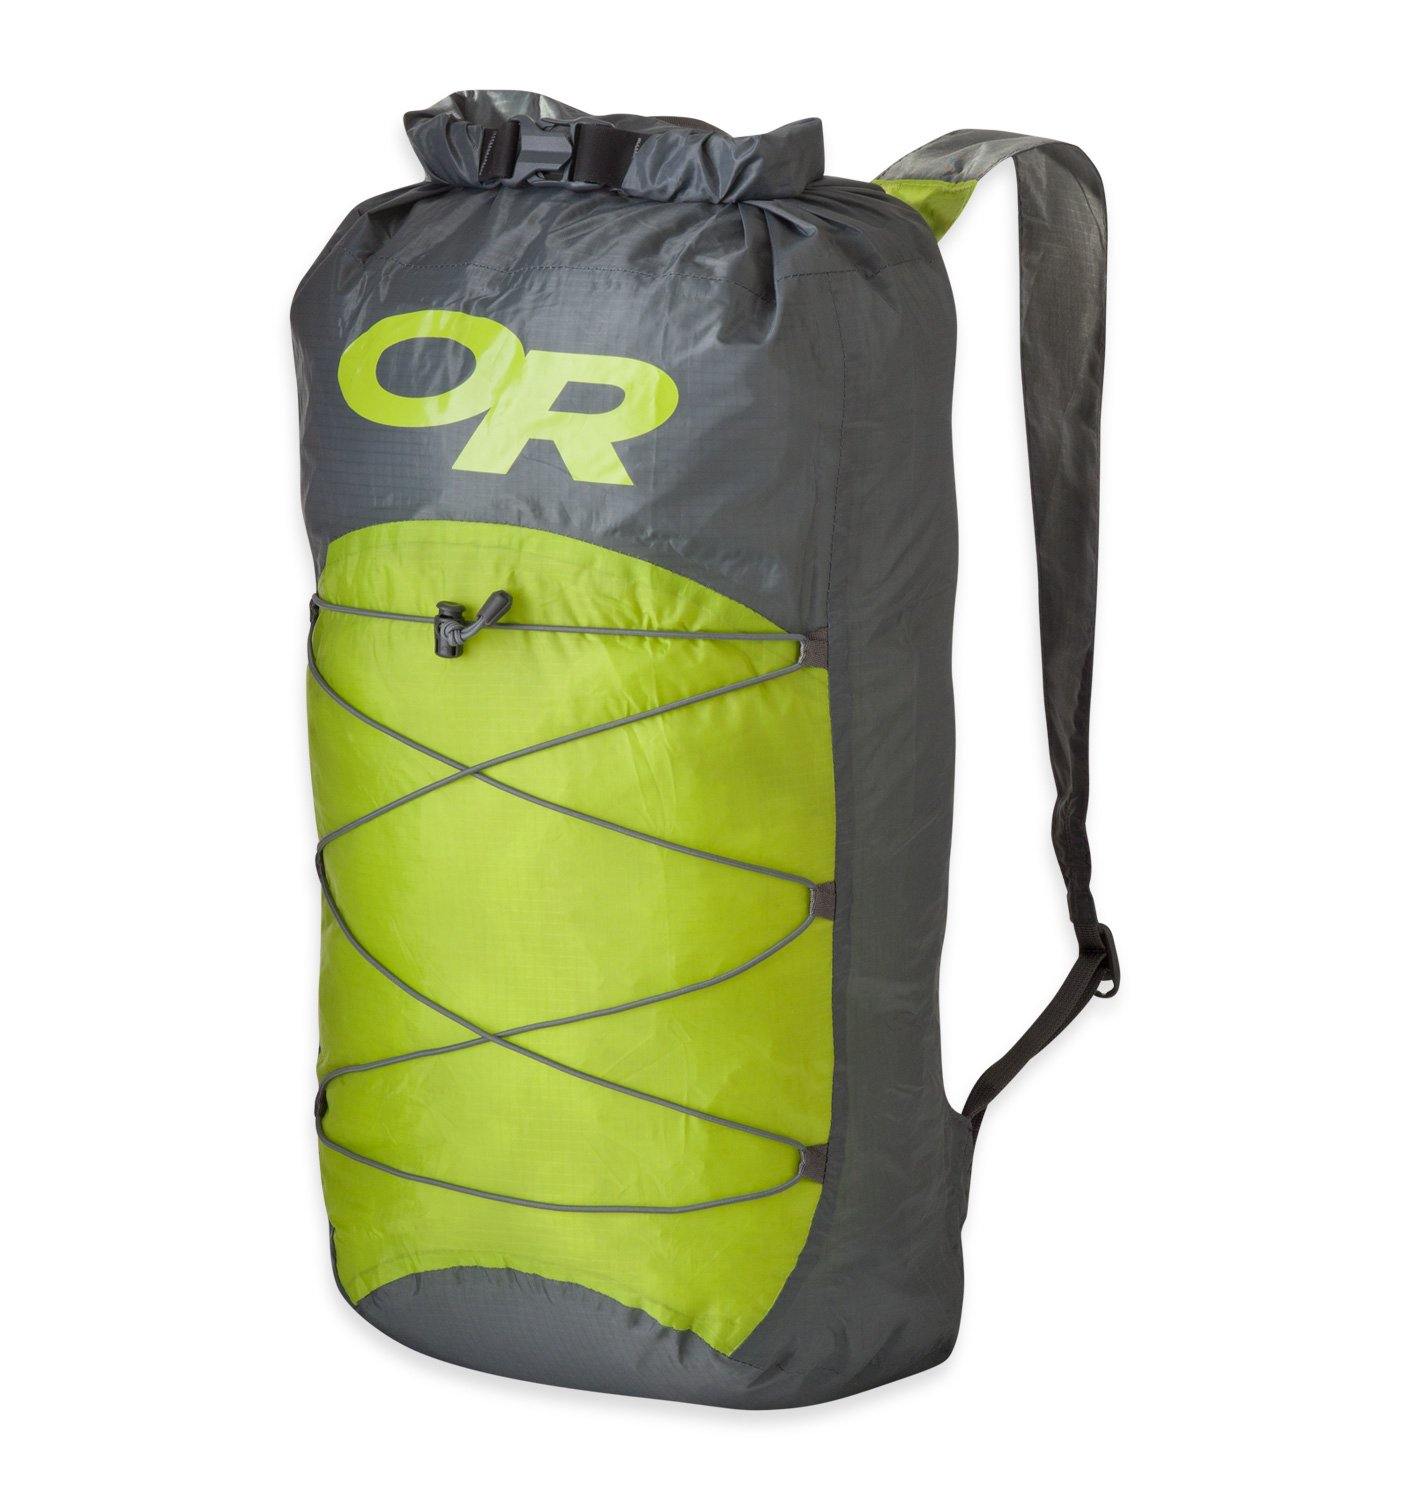 Outdoor Research Unisex Dry Isolation Pack, Pewter/Lemongrass, 1size